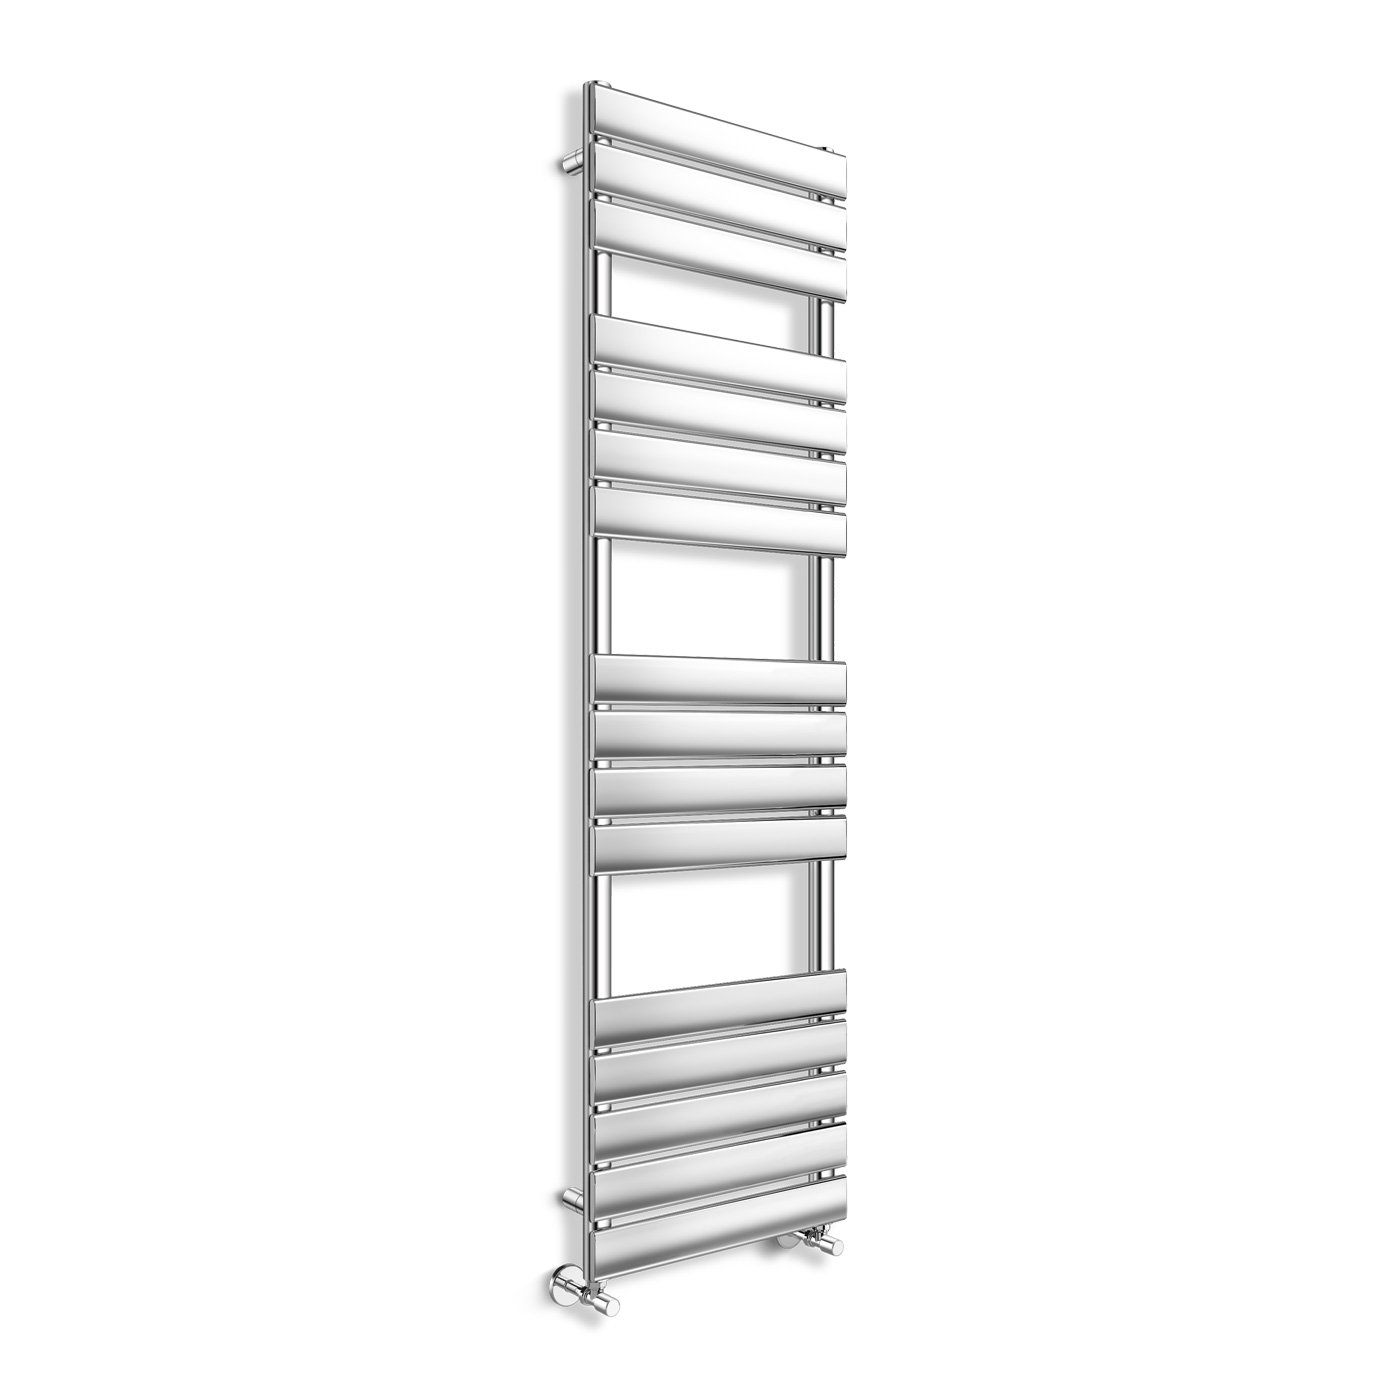 Chrome Flat Panel Ladder Towel Radiator